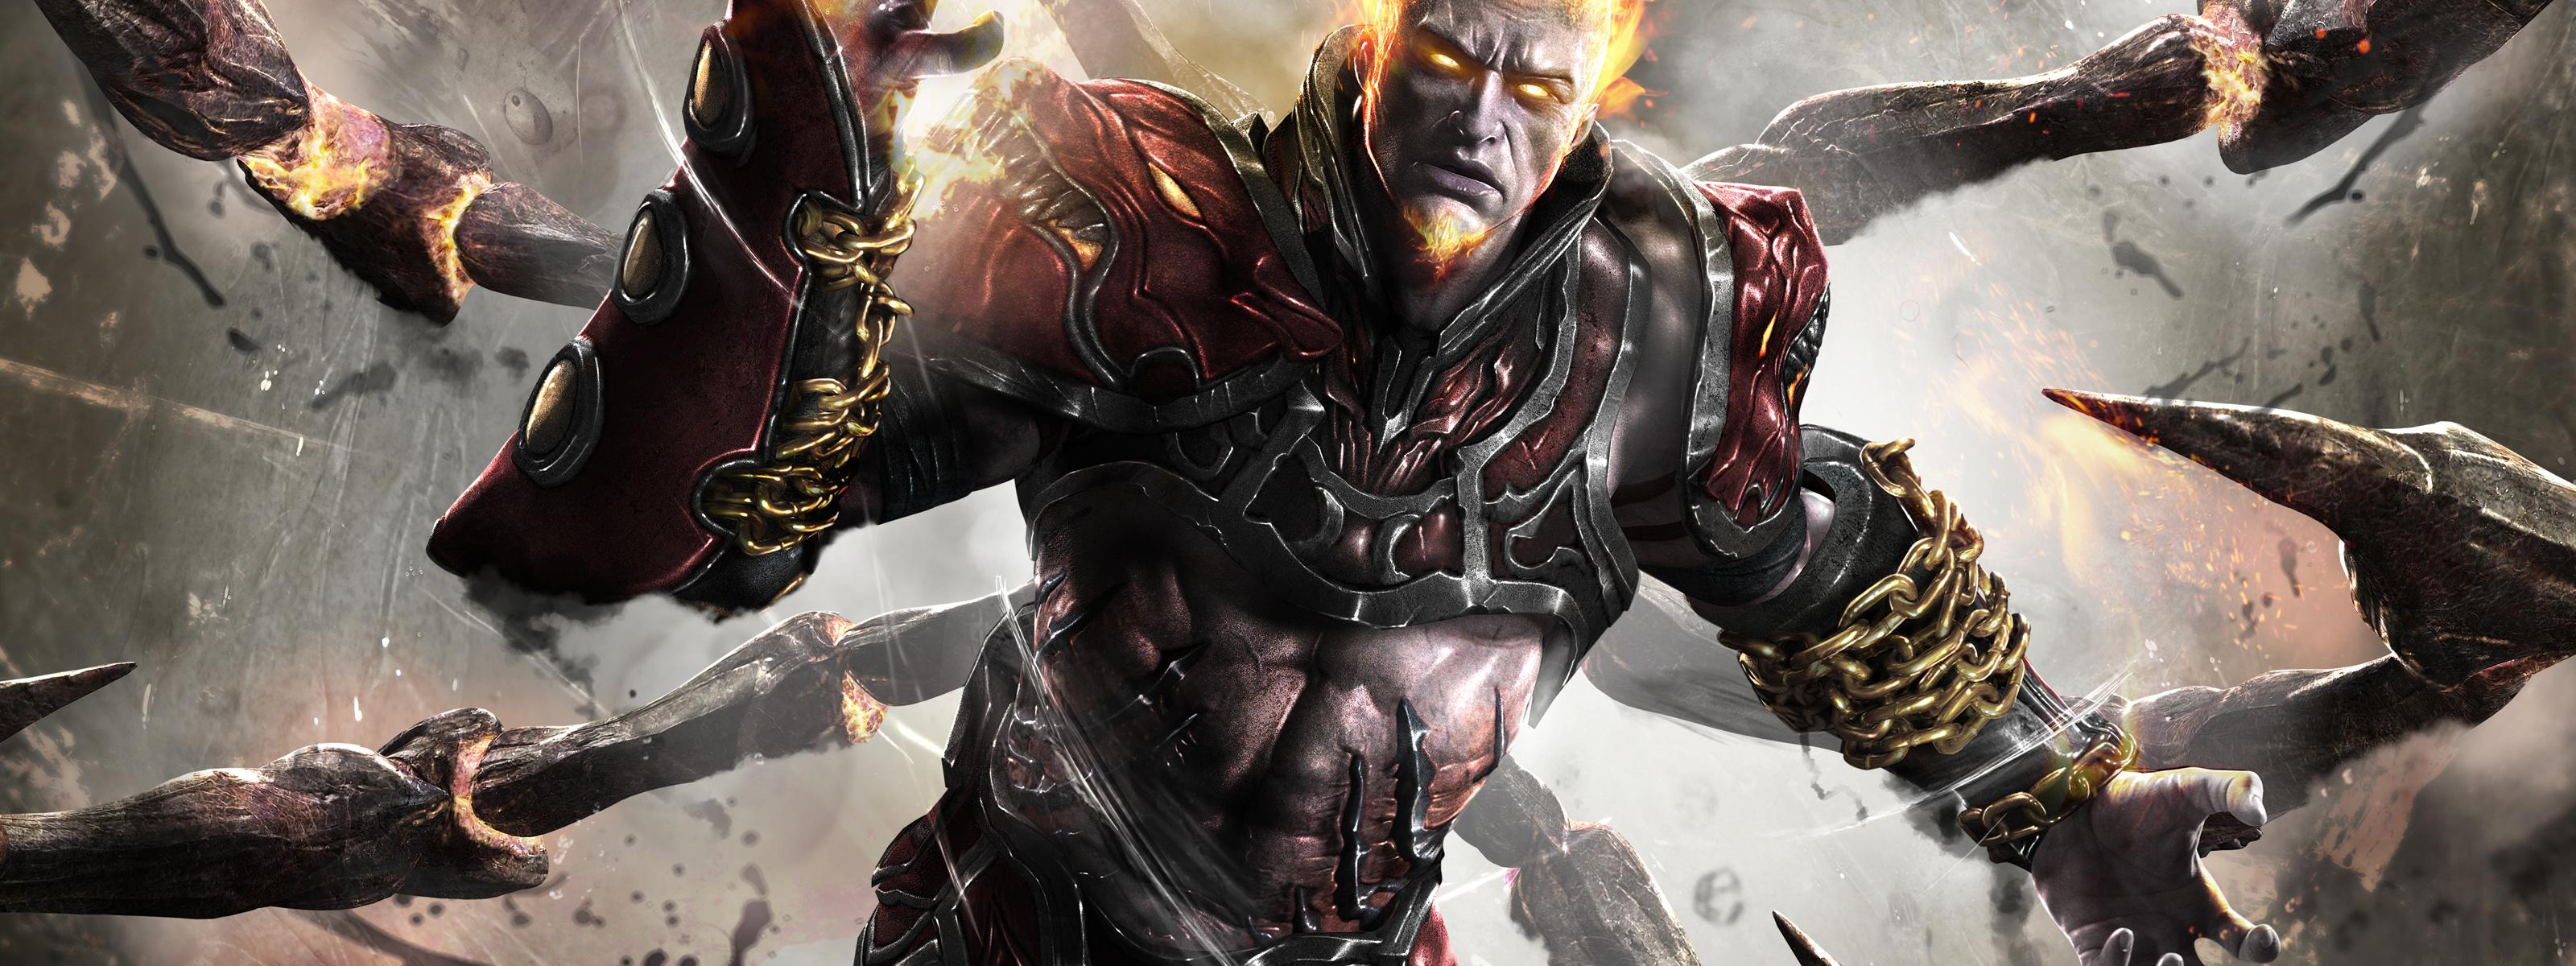 Ares from god of war ascension wallpaper download 3200x1200 download wallpaper 3200x1200 ares from god of war ascension voltagebd Image collections